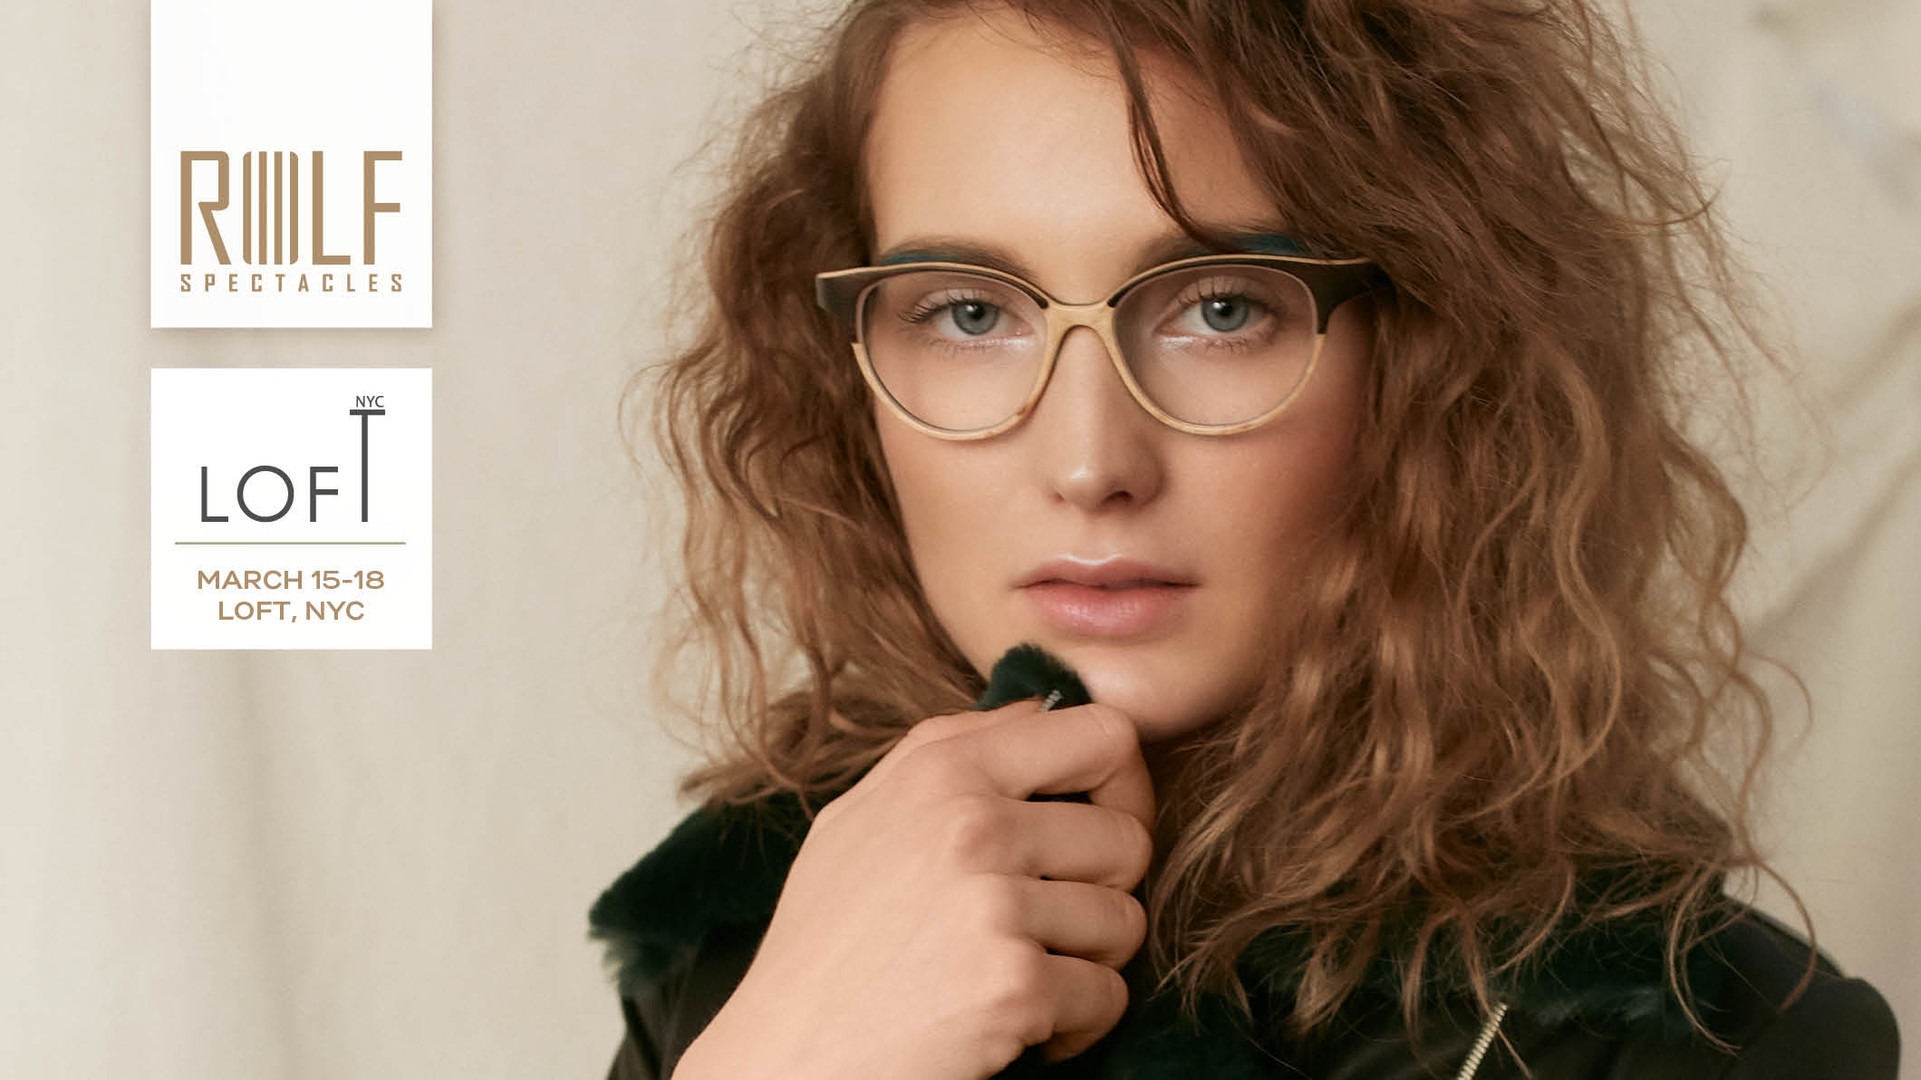 efeead05d51 Eyewear Trade Shows 2018 - ROLF Spectacles